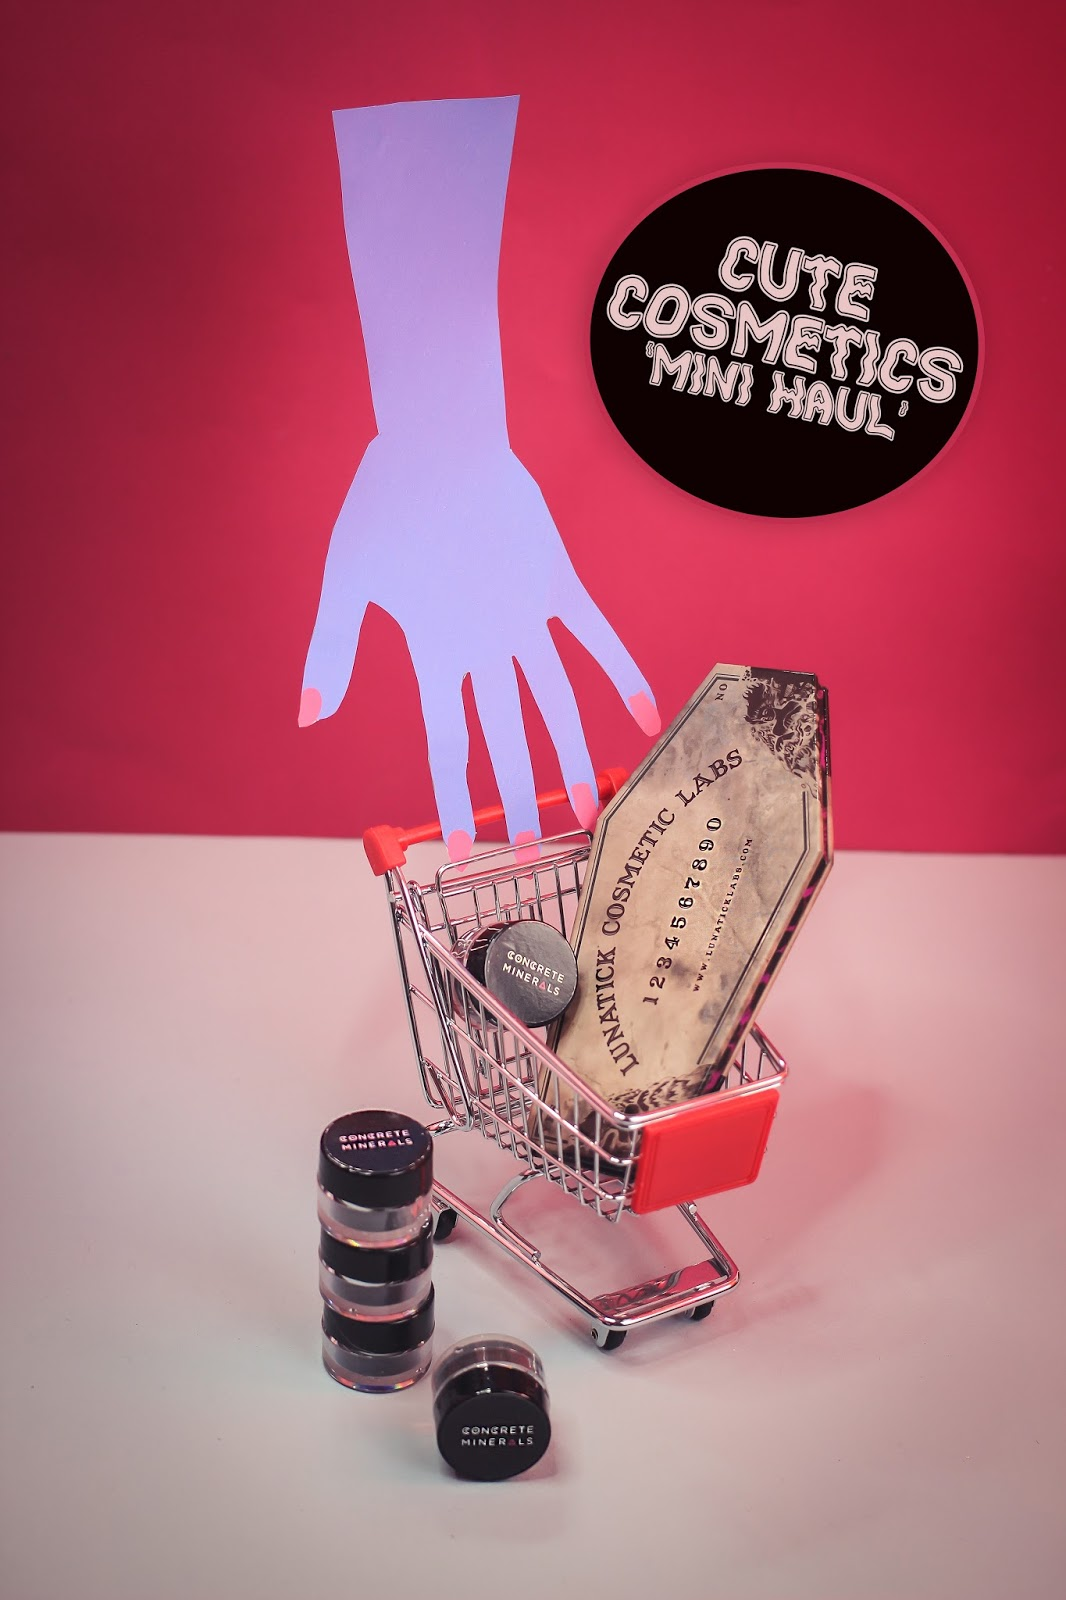 Cute Cosmetics Mini Haul: Lunatick Cosmetics & Concrete Minerals  - The Goodowl UK Blogger